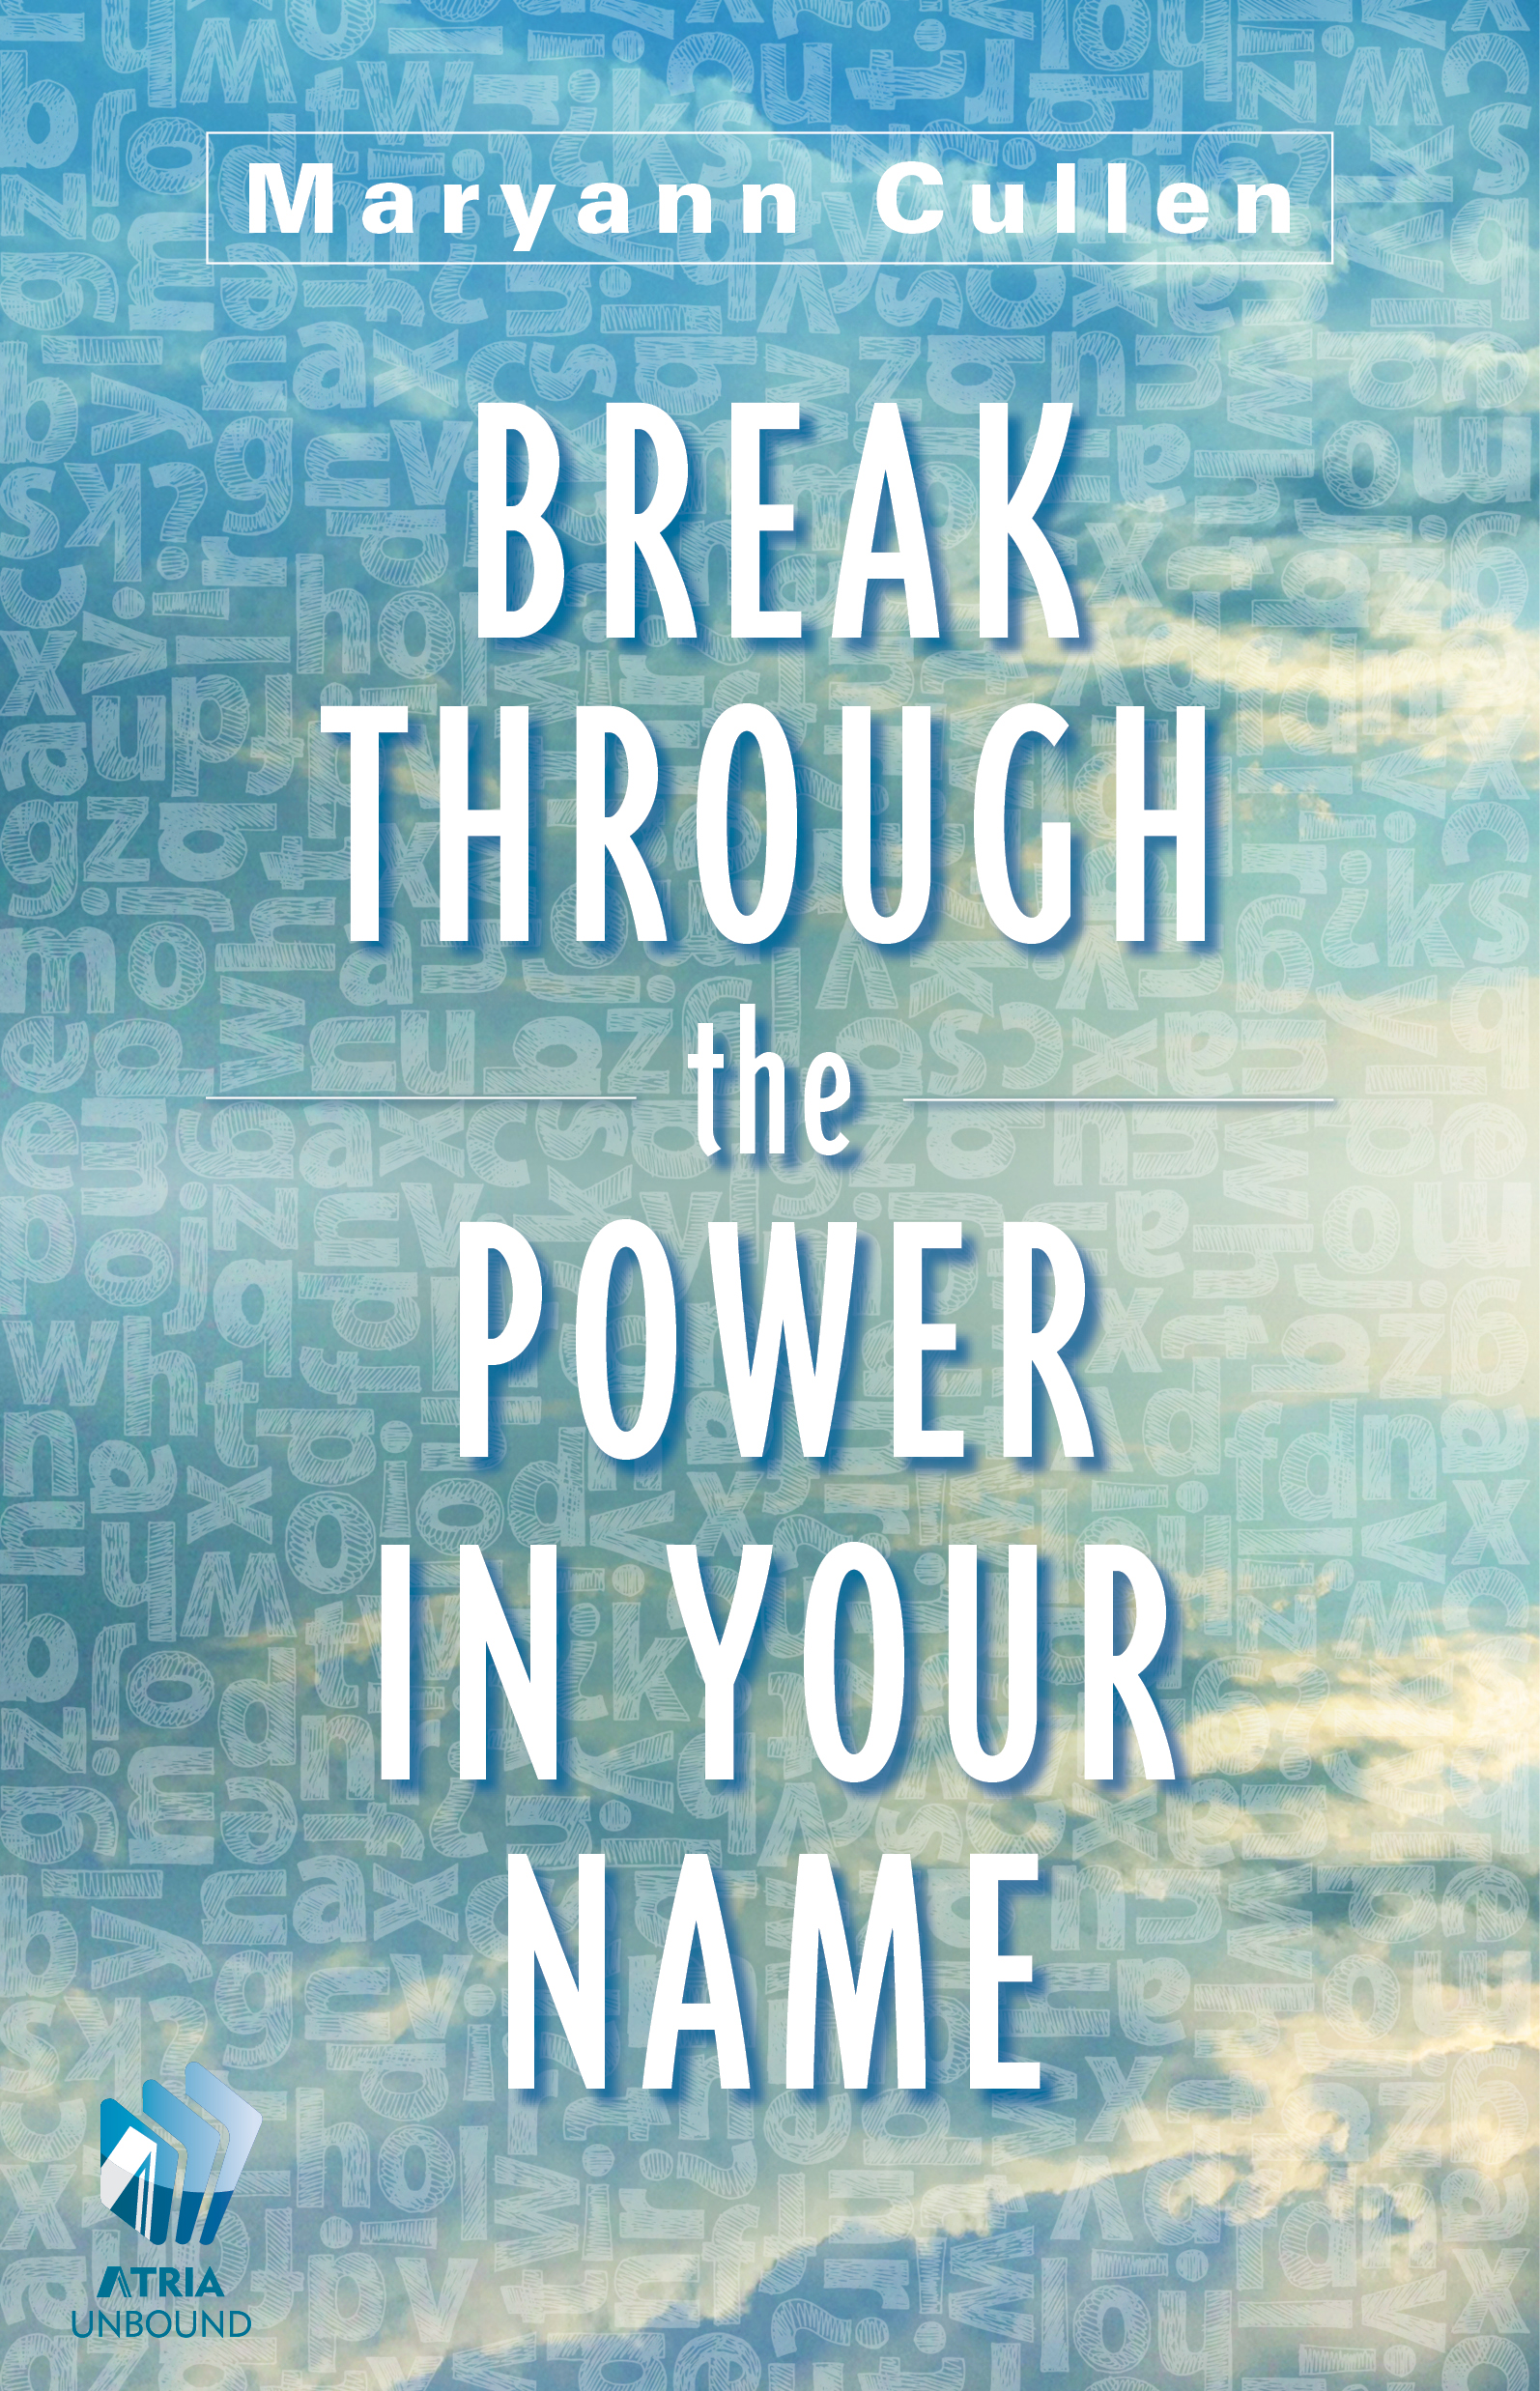 Break-through-the-power-in-your-name-9781476740775_hr